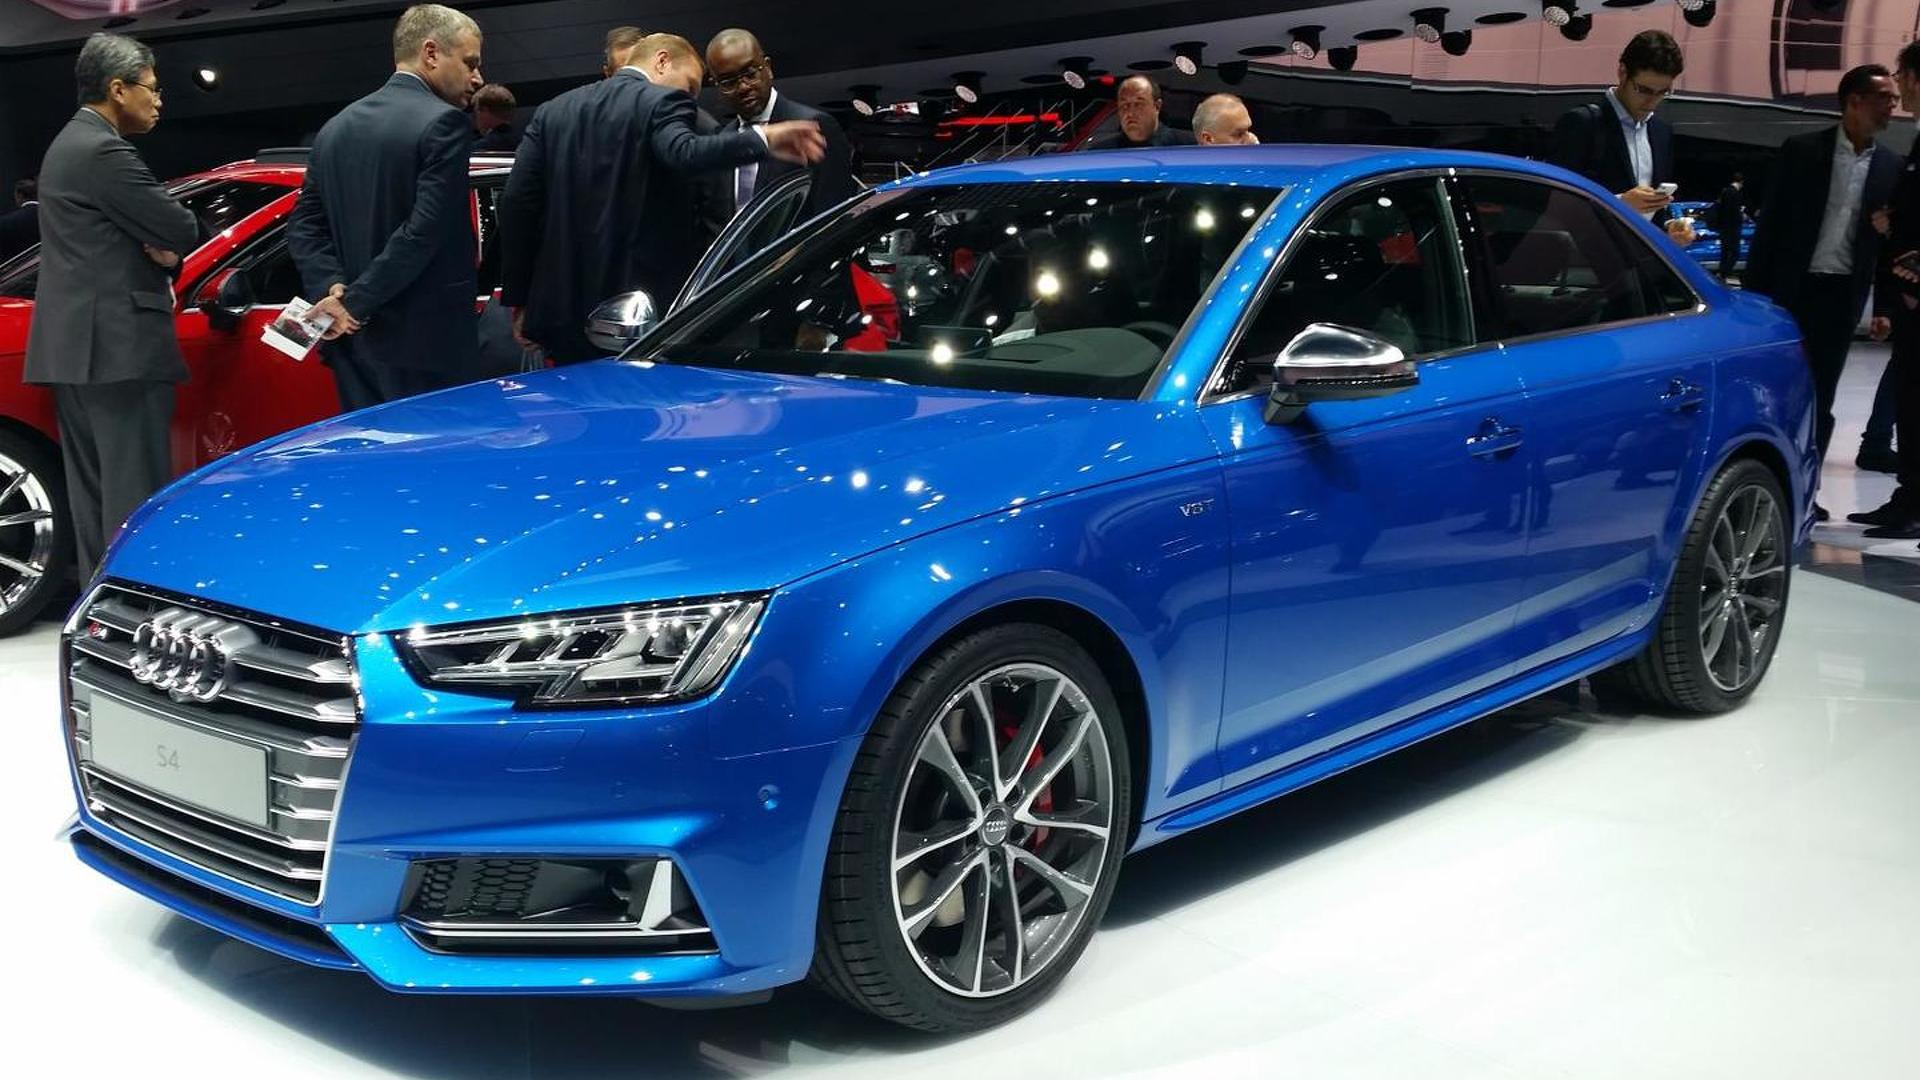 2016 audi s4 announced in frankfurt with new v6 3 0 tfsi. Black Bedroom Furniture Sets. Home Design Ideas